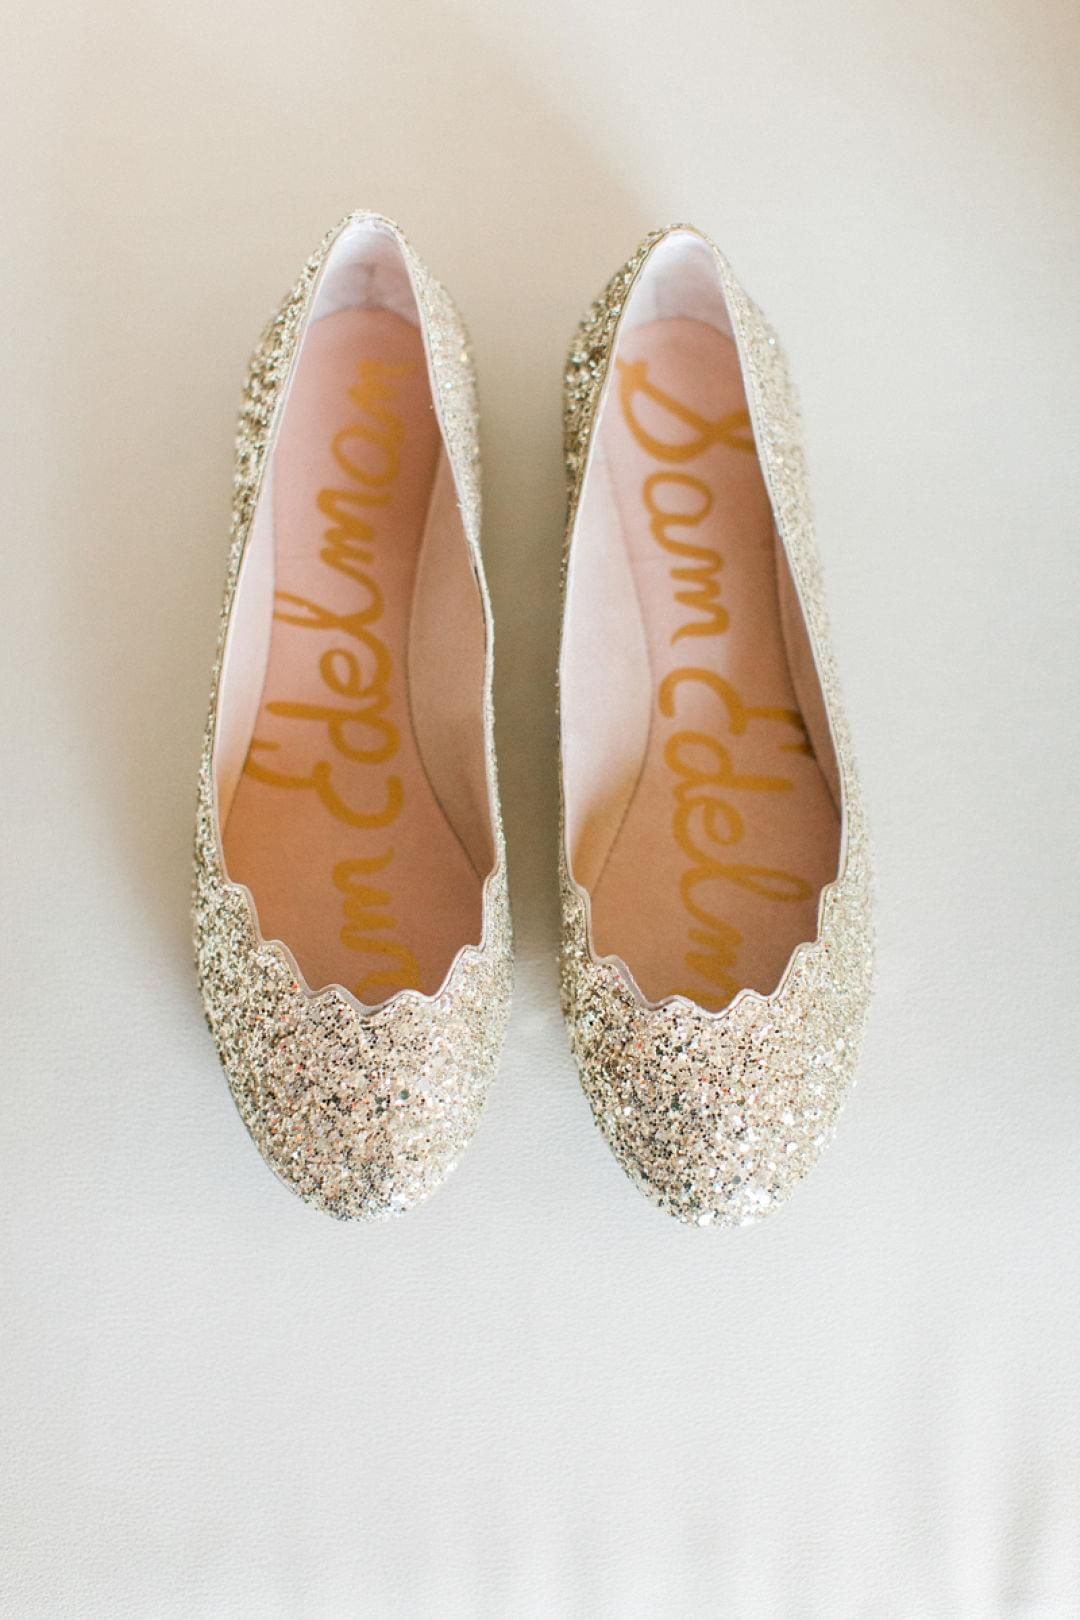 3469eaaeafdd2 Wedding shoes